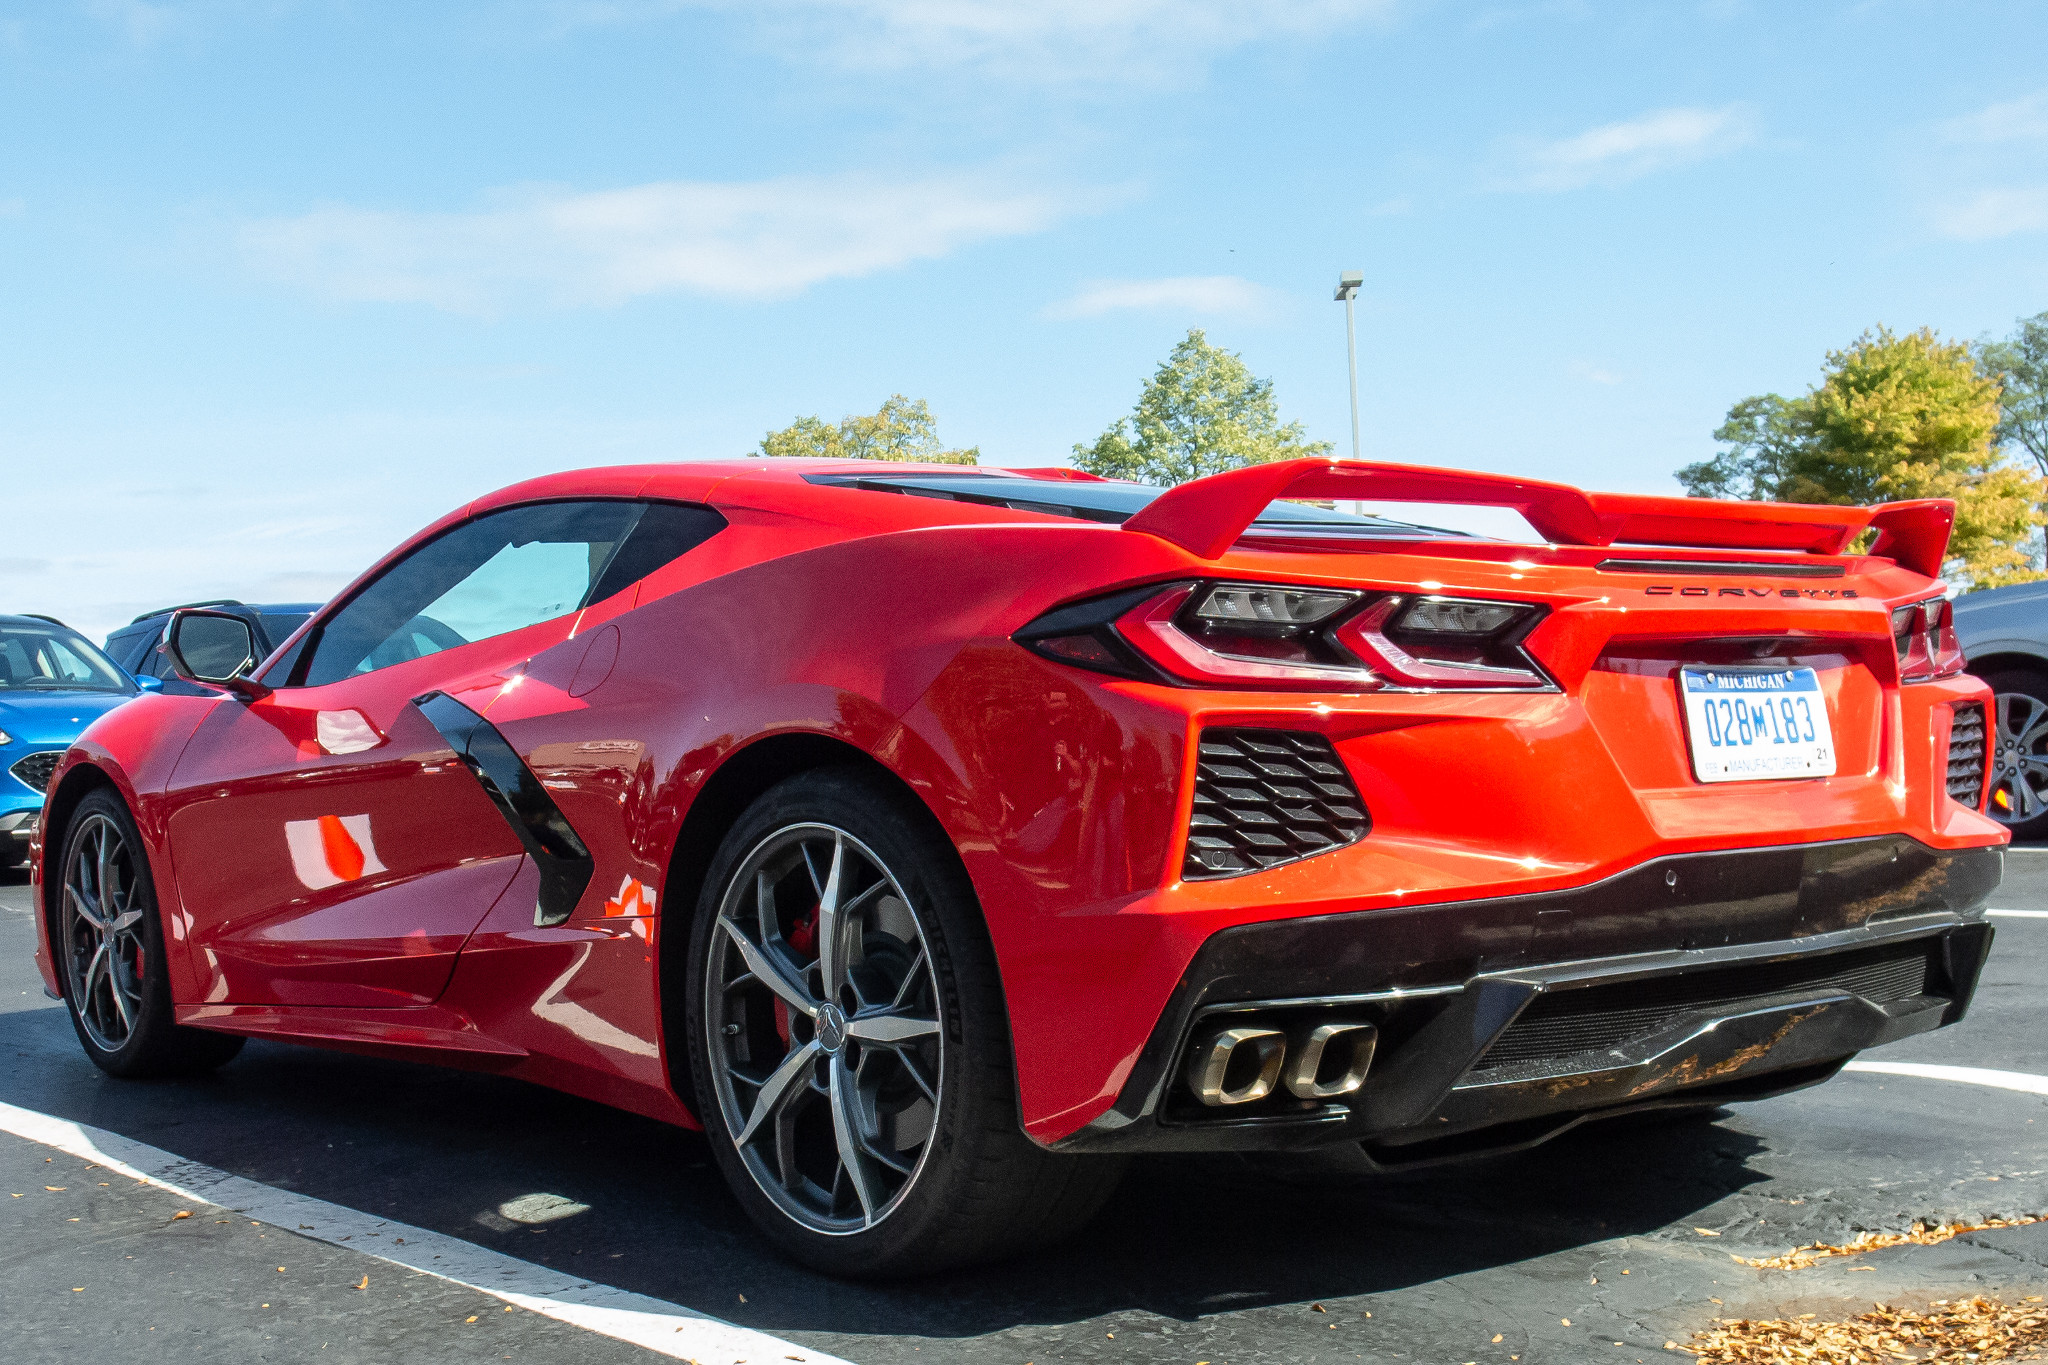 2020 Chevrolet Corvette: What It Lacks in Timeliness, It ...